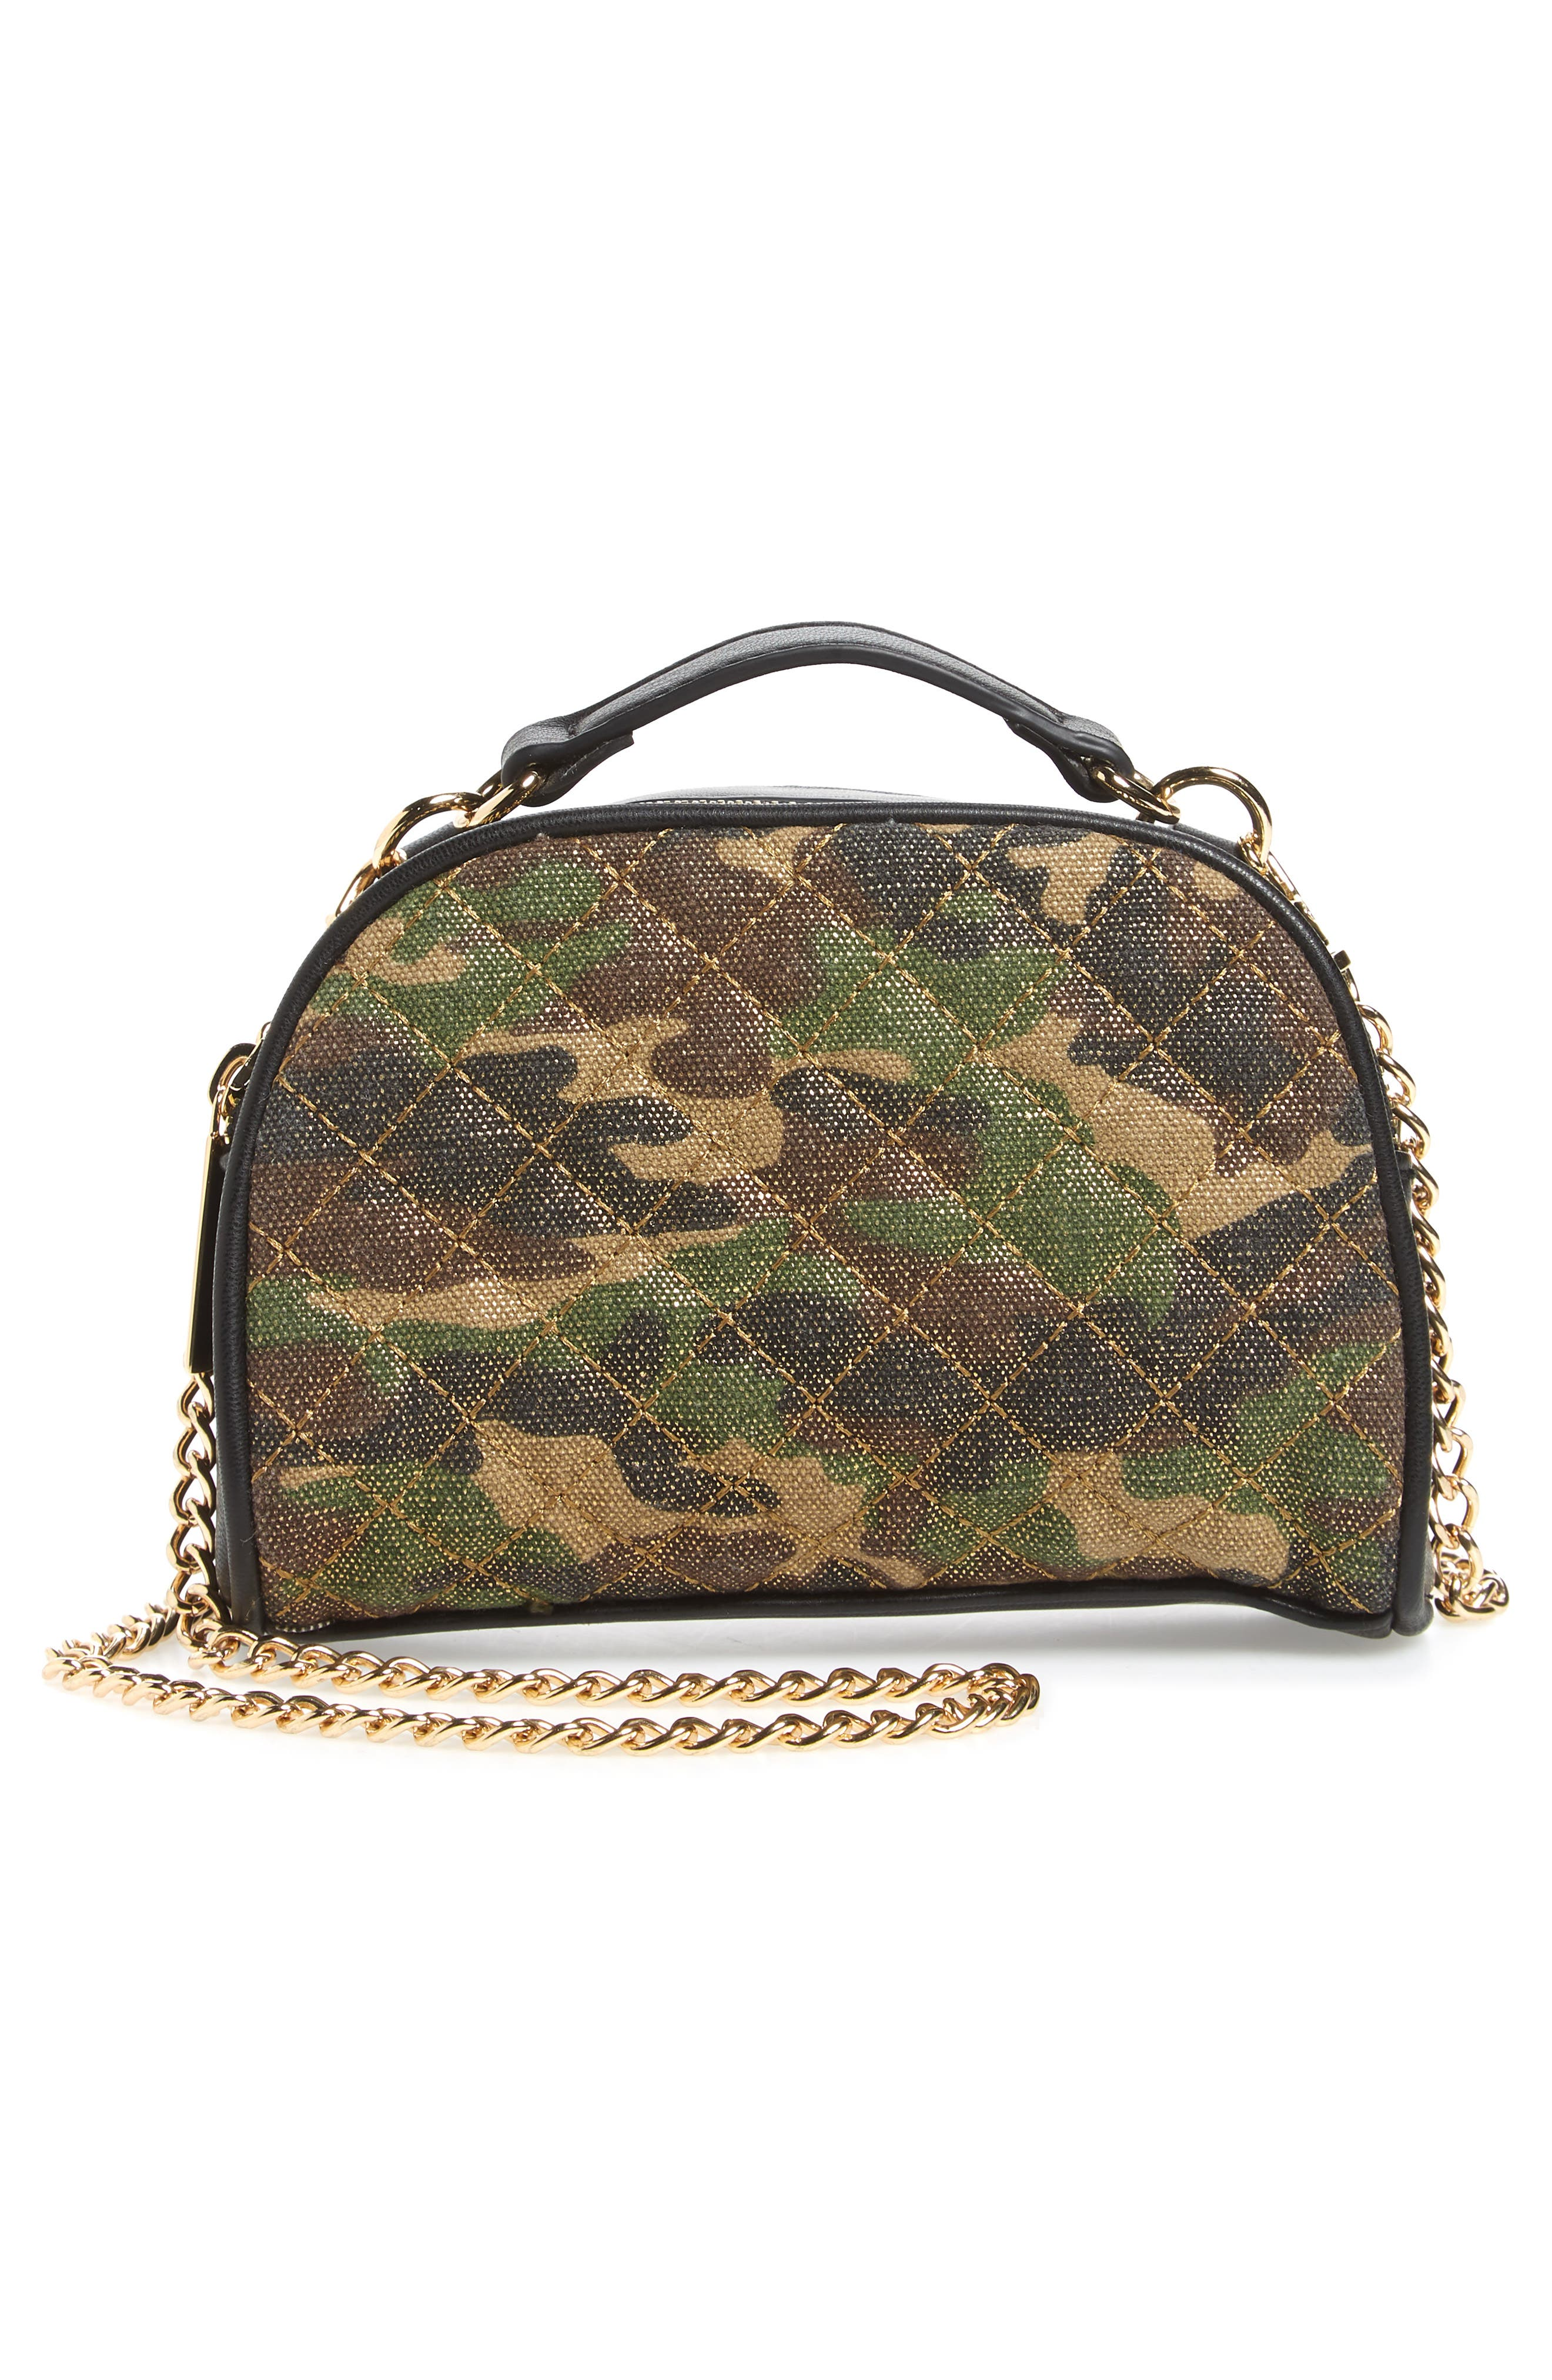 Mali + Lili Quilted Camouflage Belt Bag,                             Alternate thumbnail 5, color,                             Camouflage